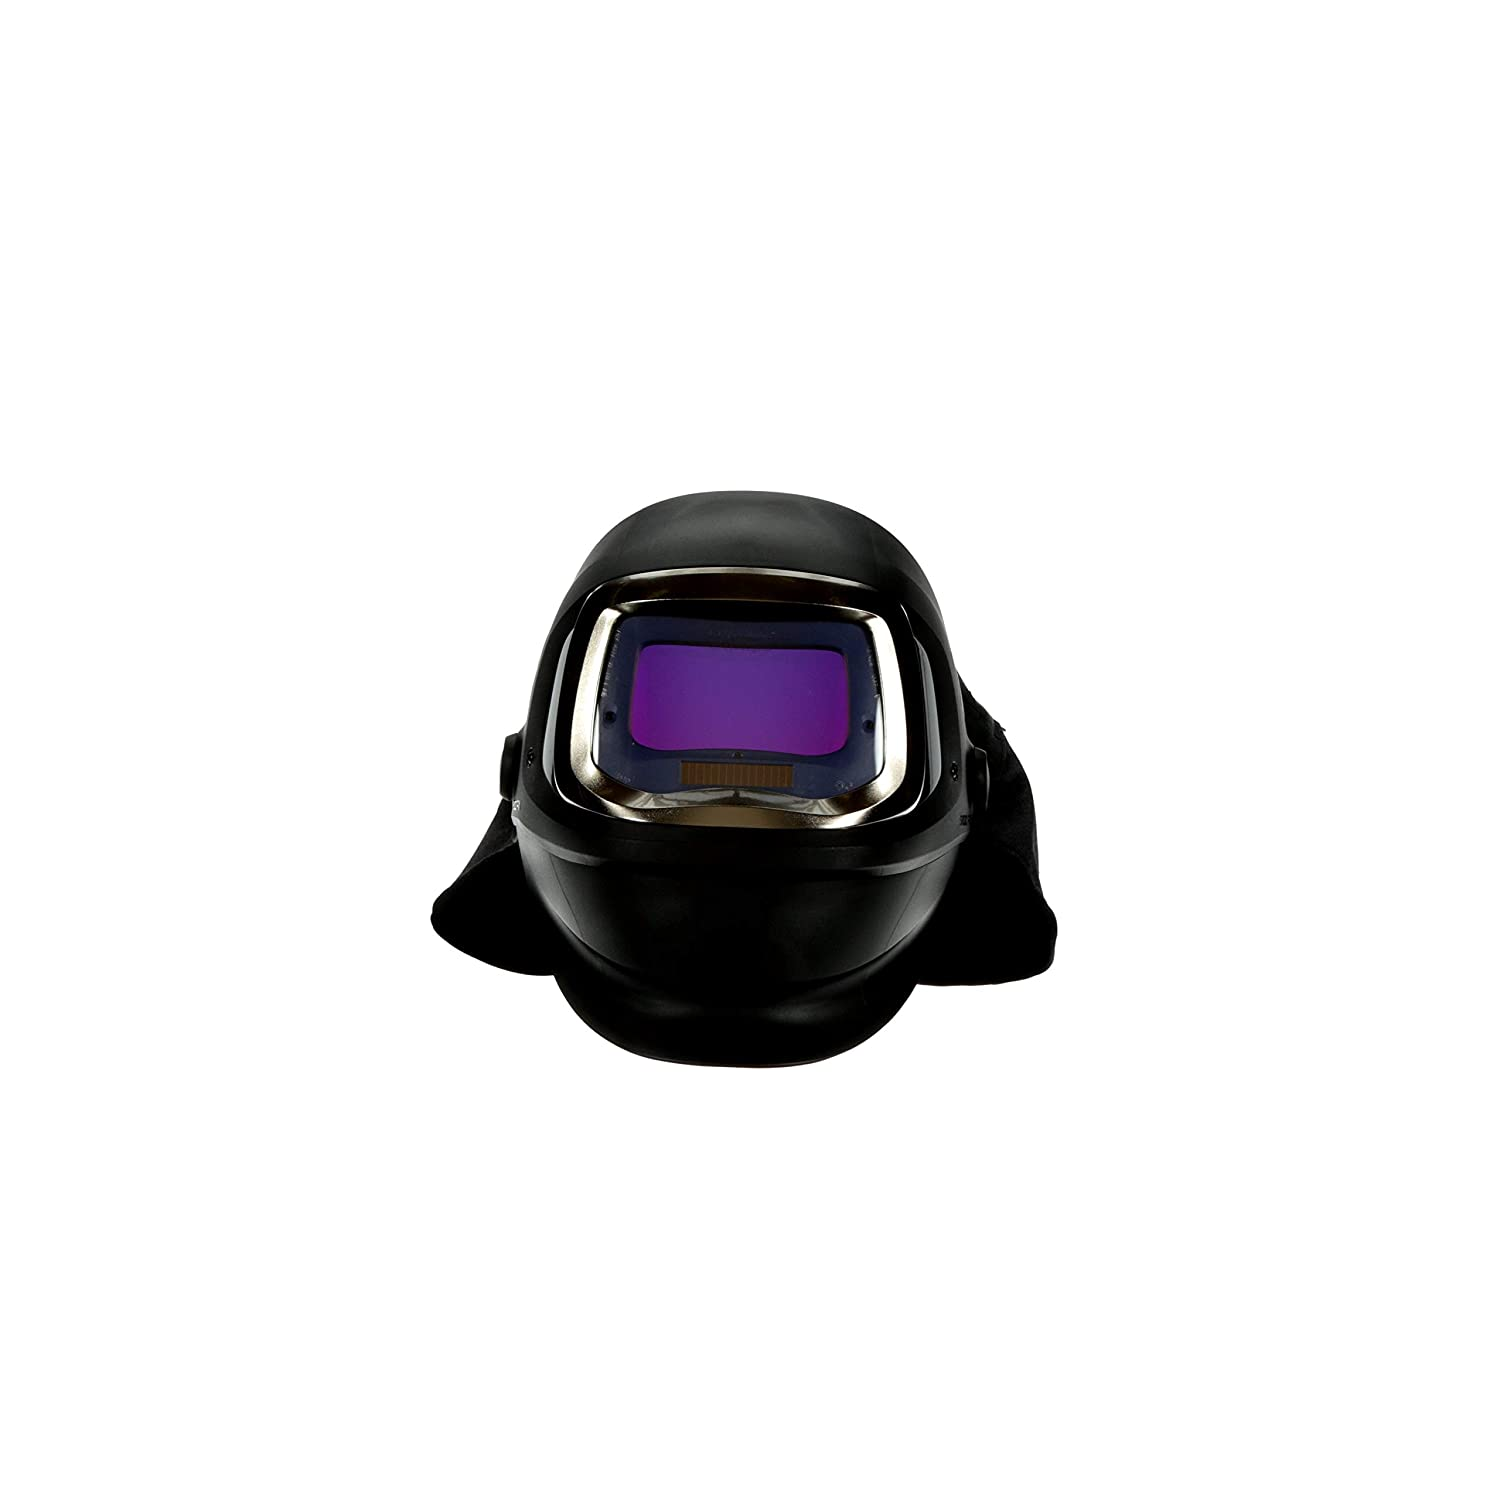 Image of 3M Adflo Powered Air Purifying Respirator He System W 3M Speedglas Welding Helmet 9100 Fx-Air, 36-1101-30Isw, 1 Ea/Case